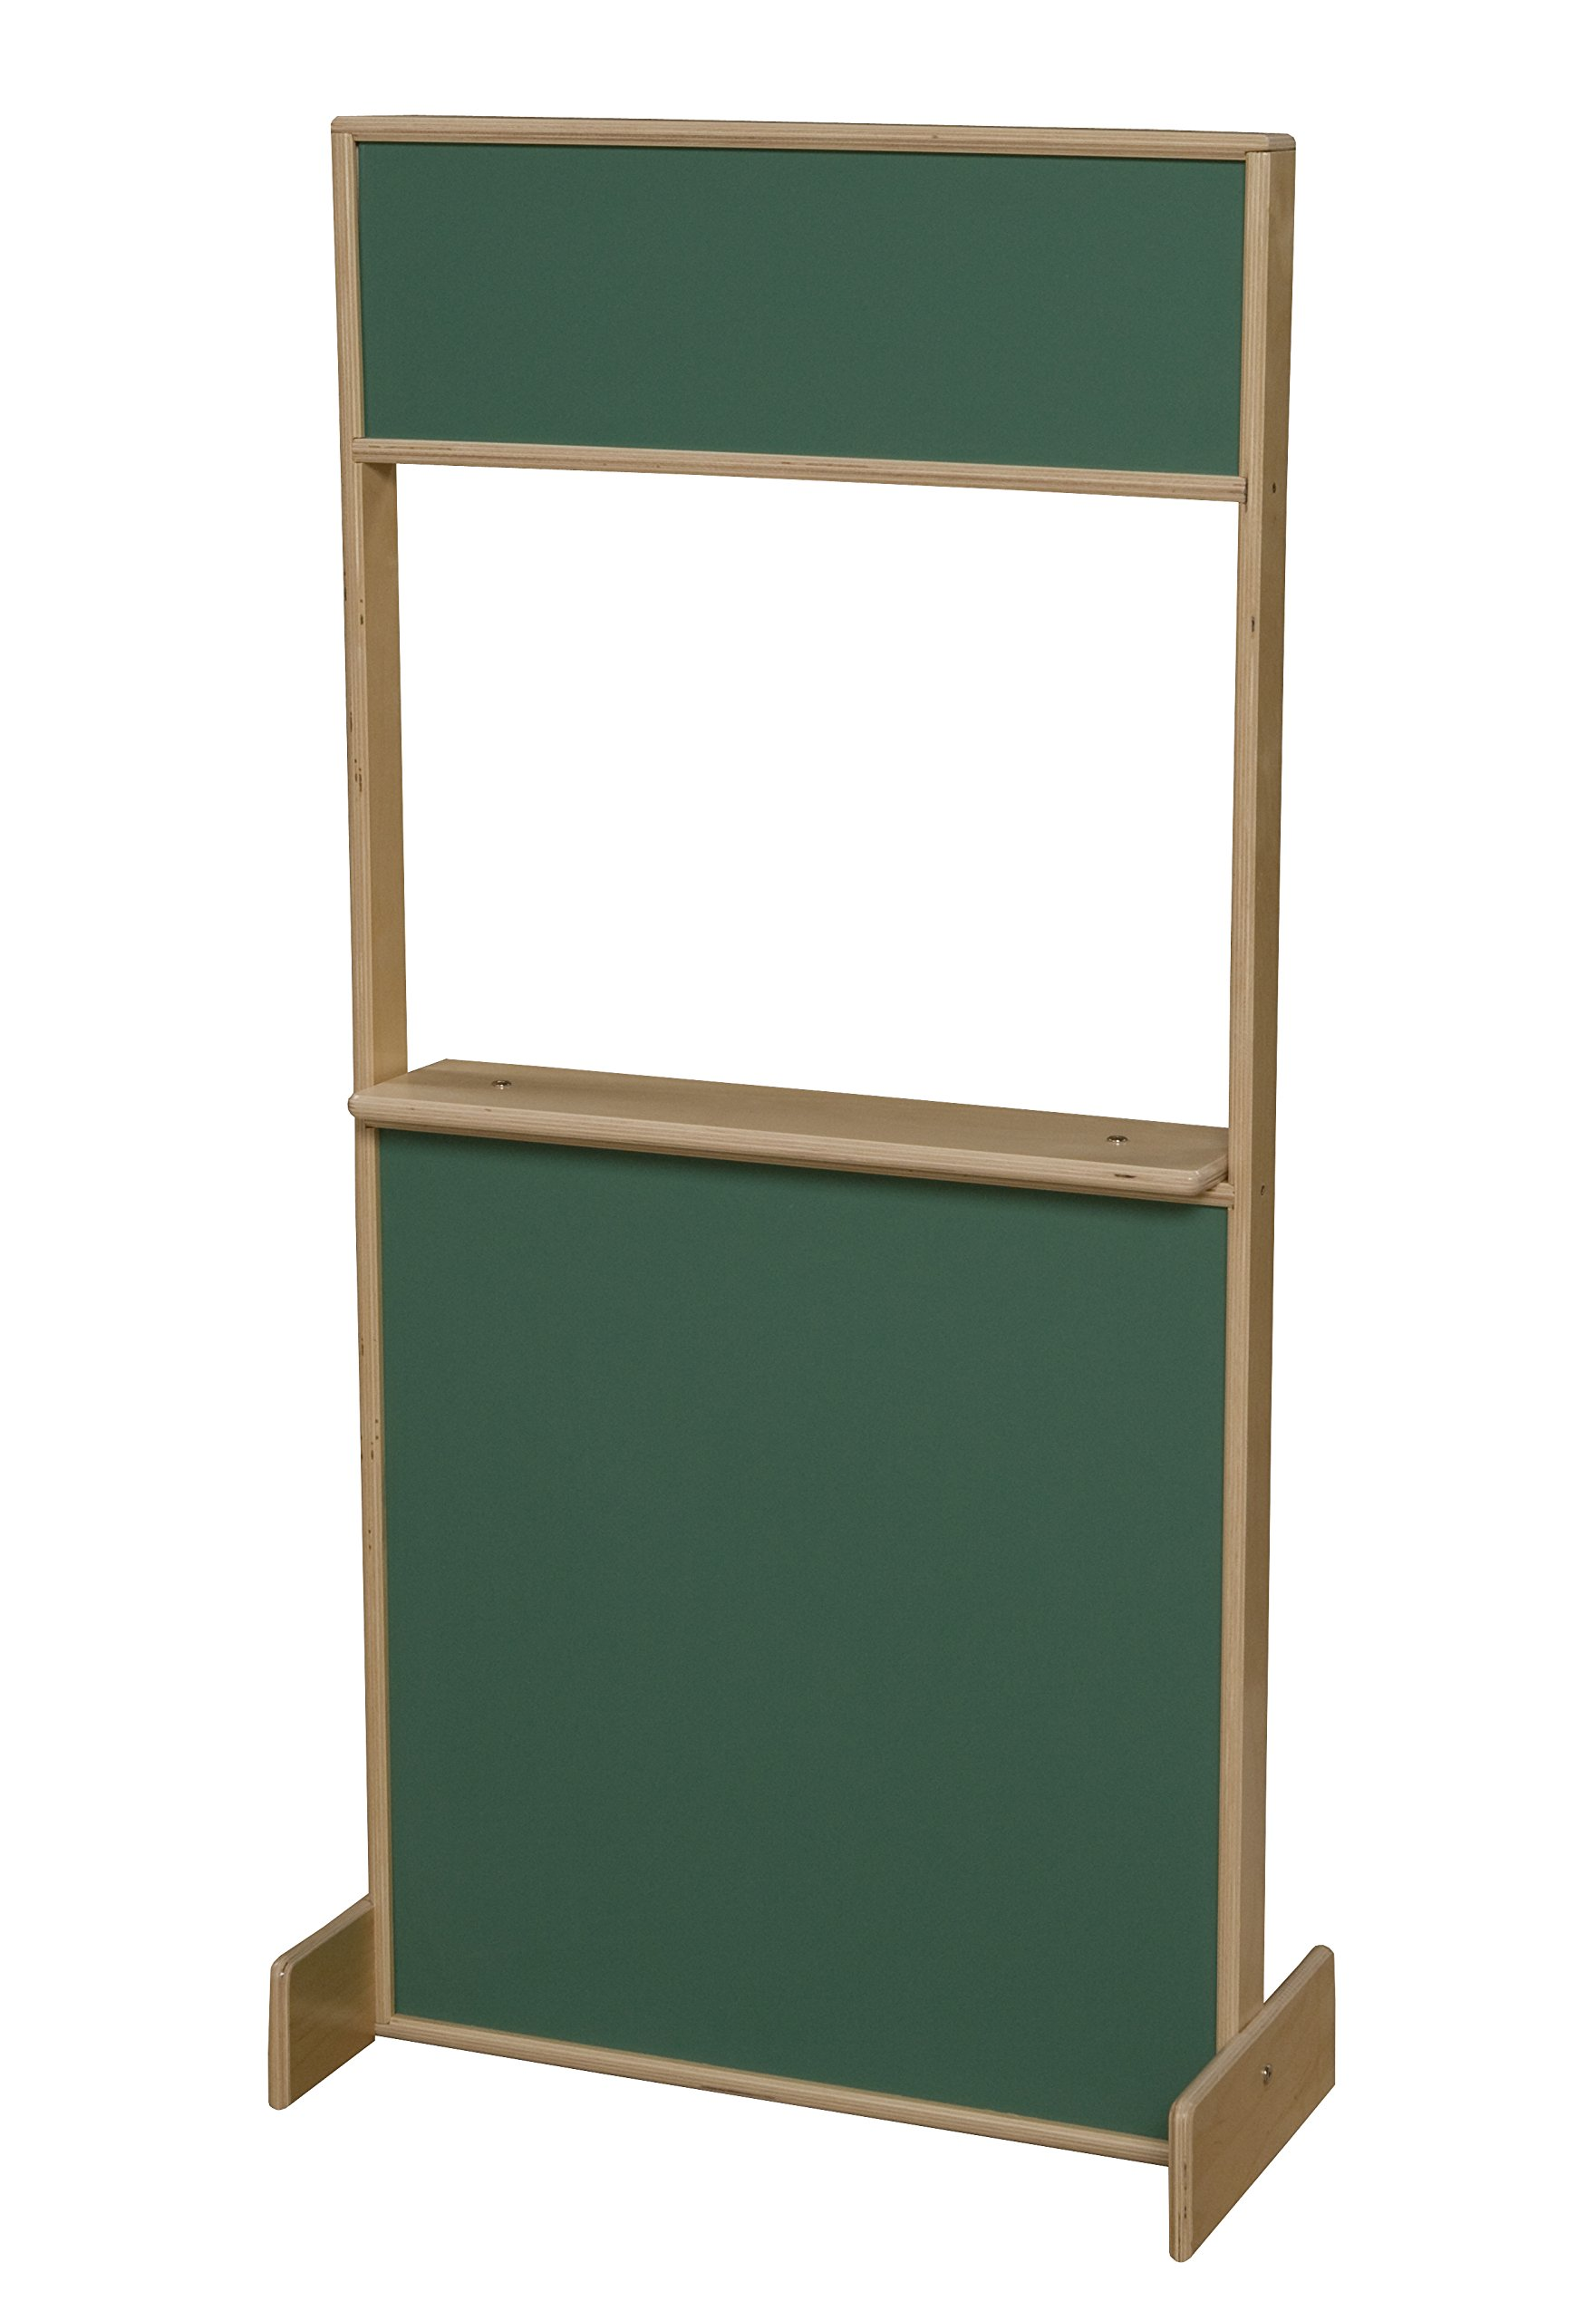 Wood Designs WD21600 Puppet Play Stage, Chalkboards, 48 x 24 x 3'' (H x W x D) by Wood Designs